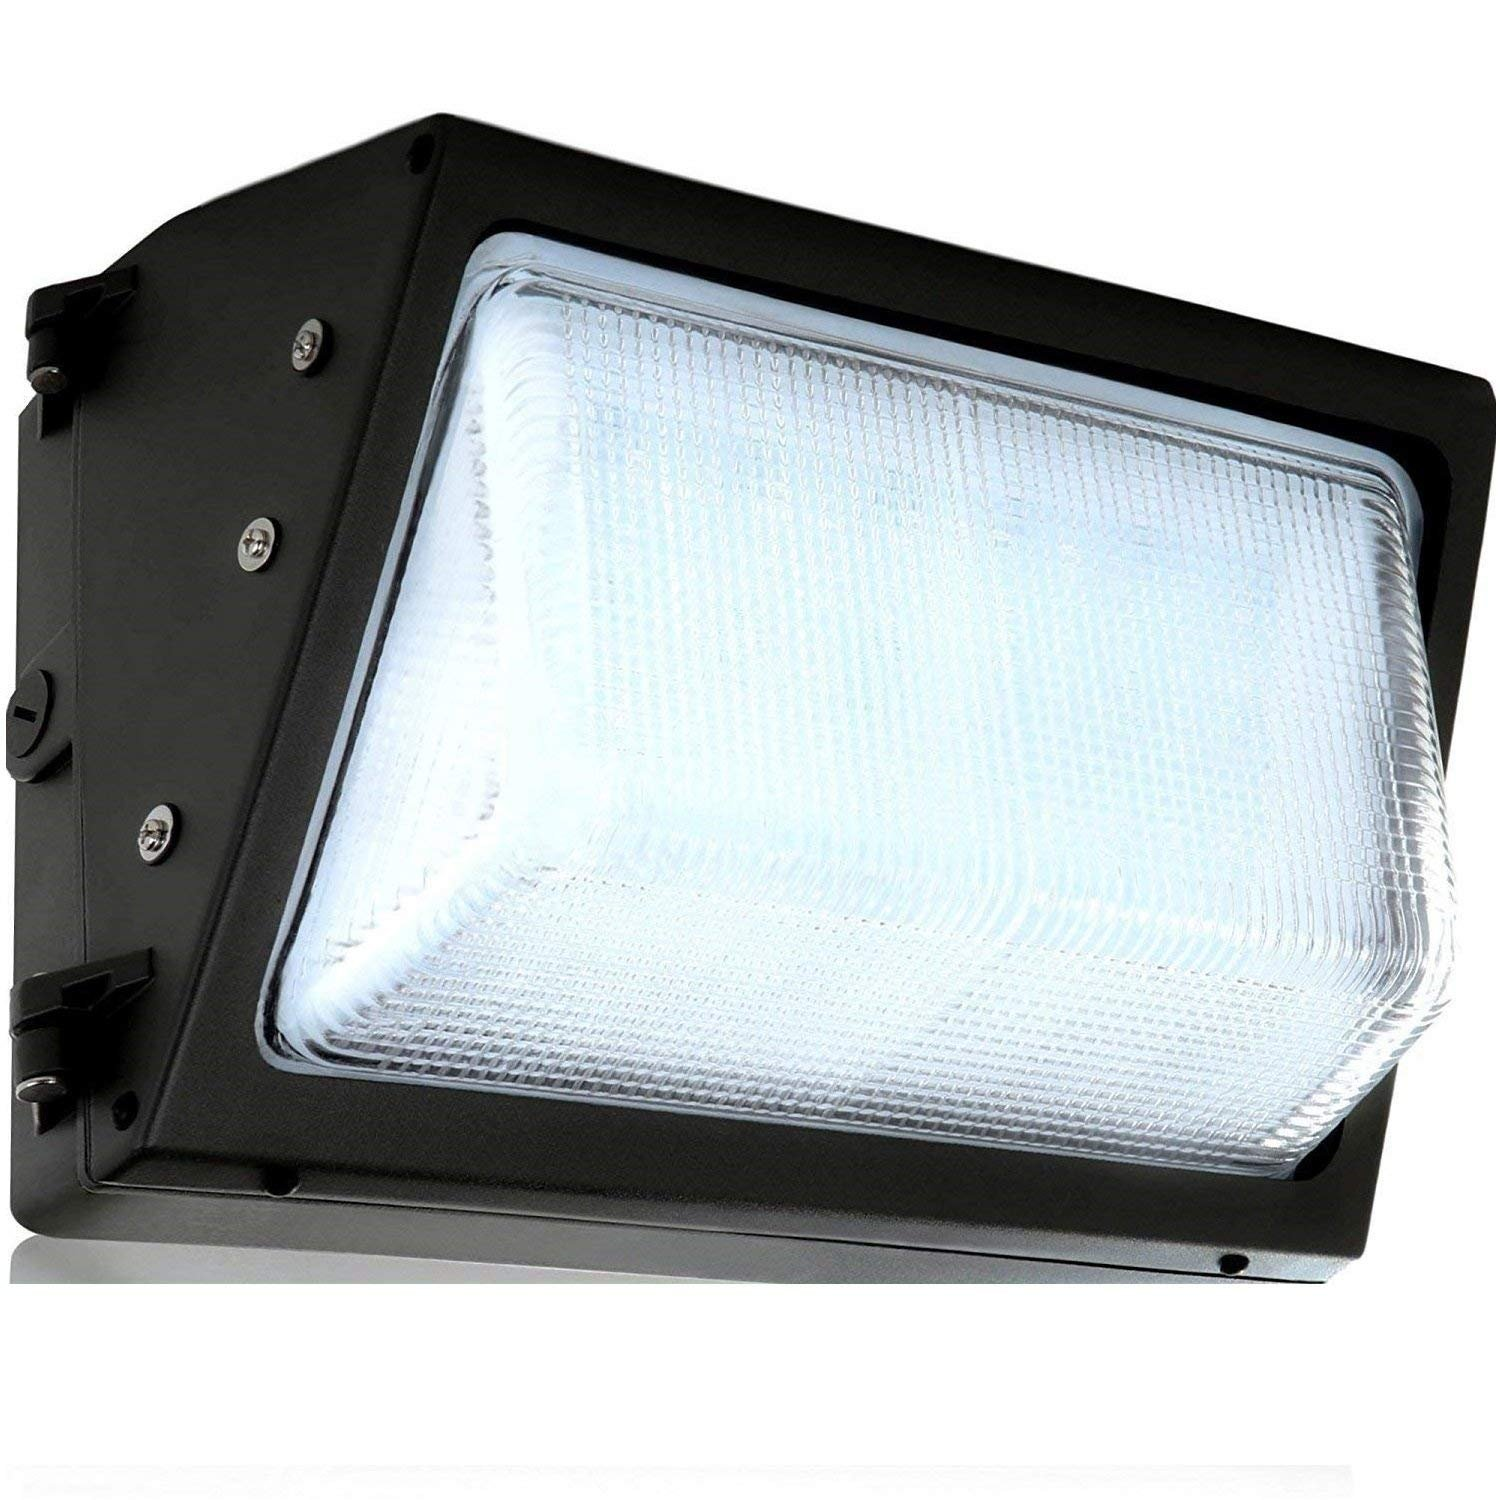 LED Wall-Pack Photo Cell Glass Lens- 60W 5000K Commercial Outdoor Light Fixture ( Out-Door Dusk to Dawn Sensor Security Porch Lighting For Industrial Out-Side Photocell )